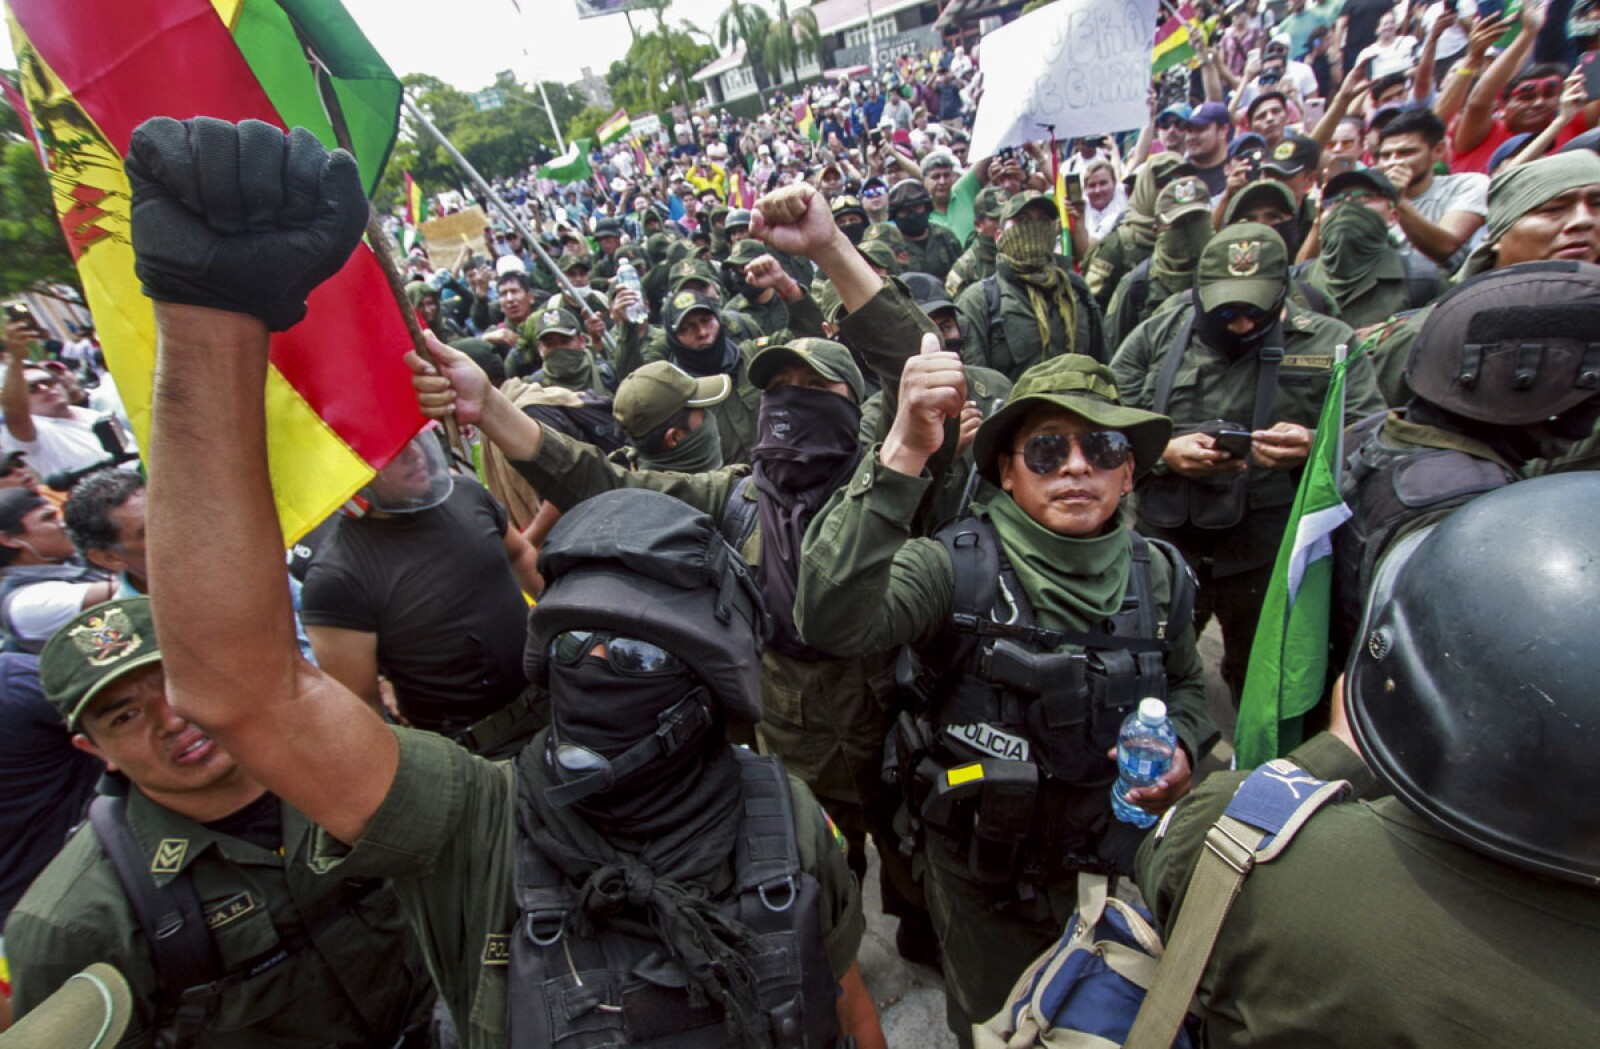 BOLIVIA-CRISIS-PROTEST-ELECTION-RESULT-POLICE